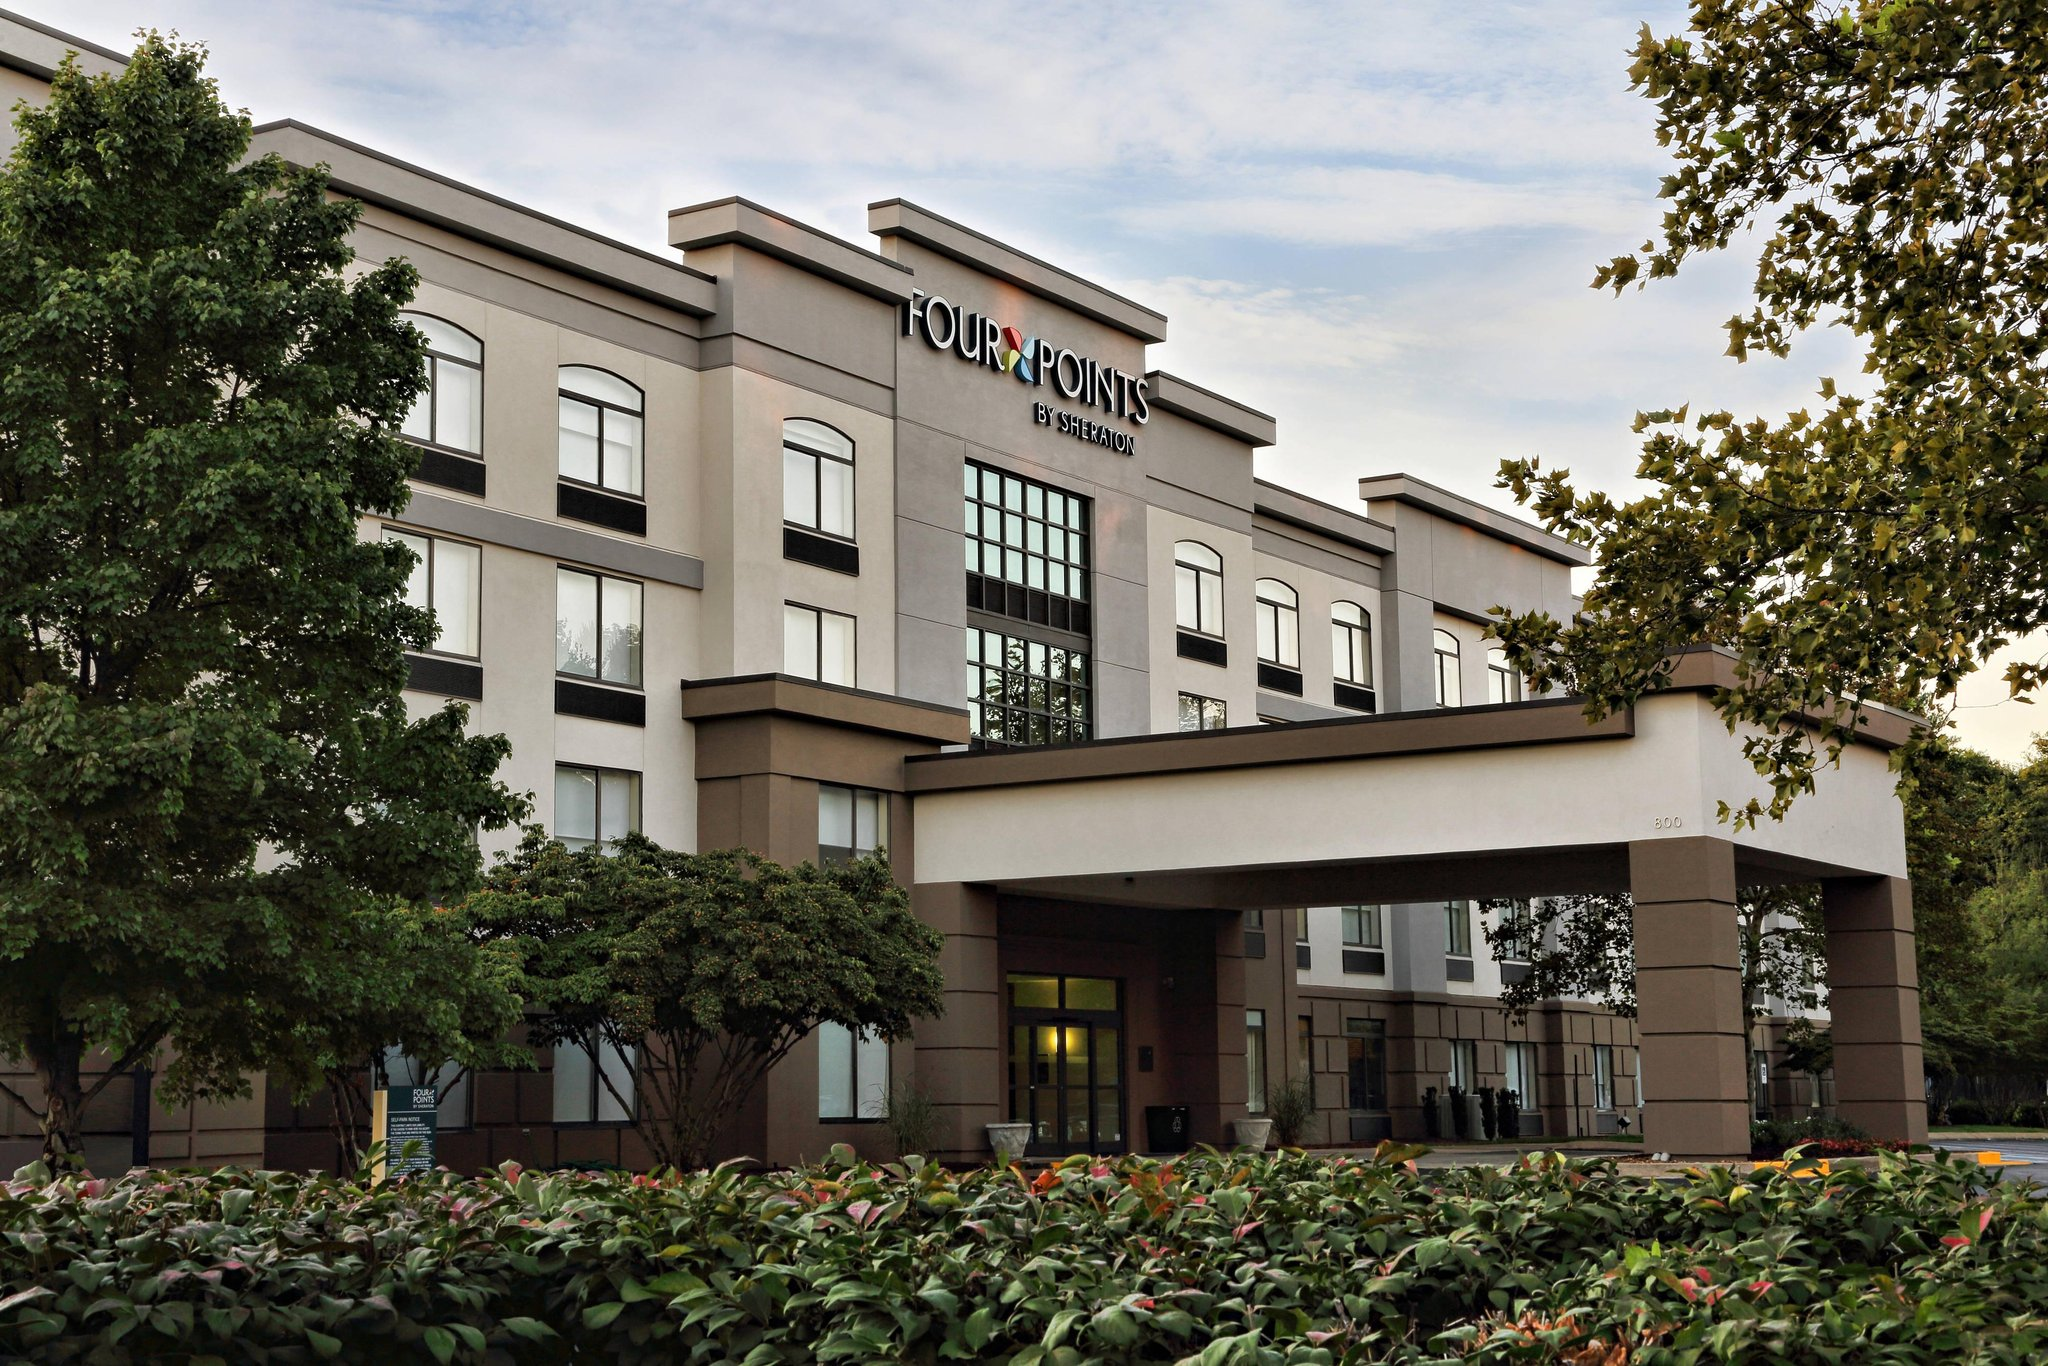 Four Points by Sheraton Nashville Arpt